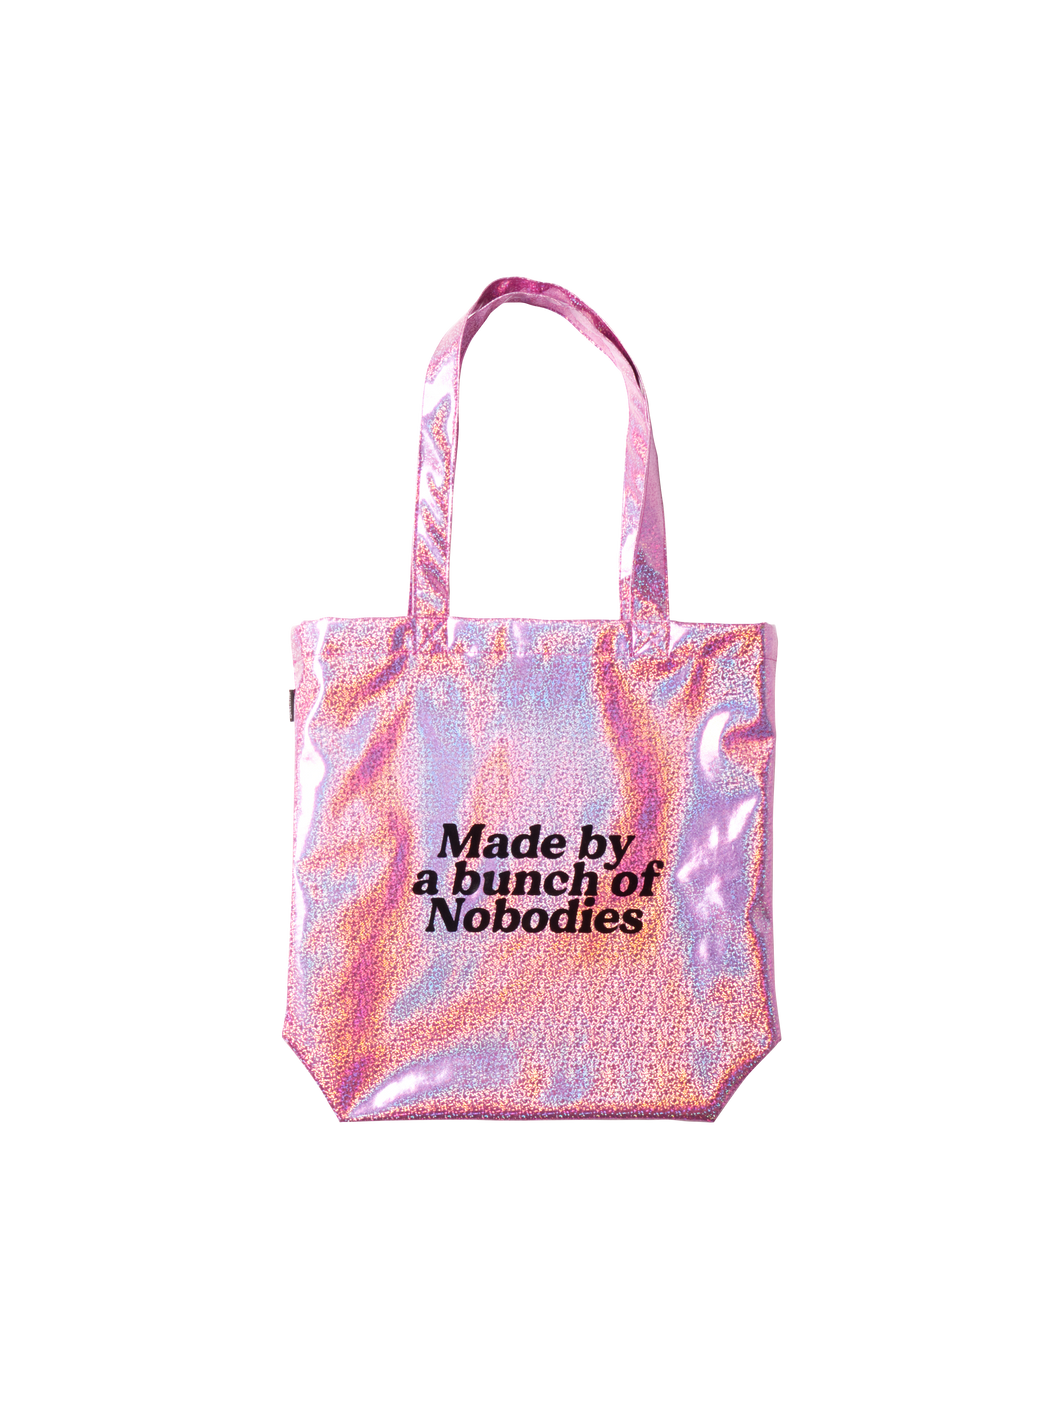 [PRE ORDER] MADE BY HALSEY TOTE BAG